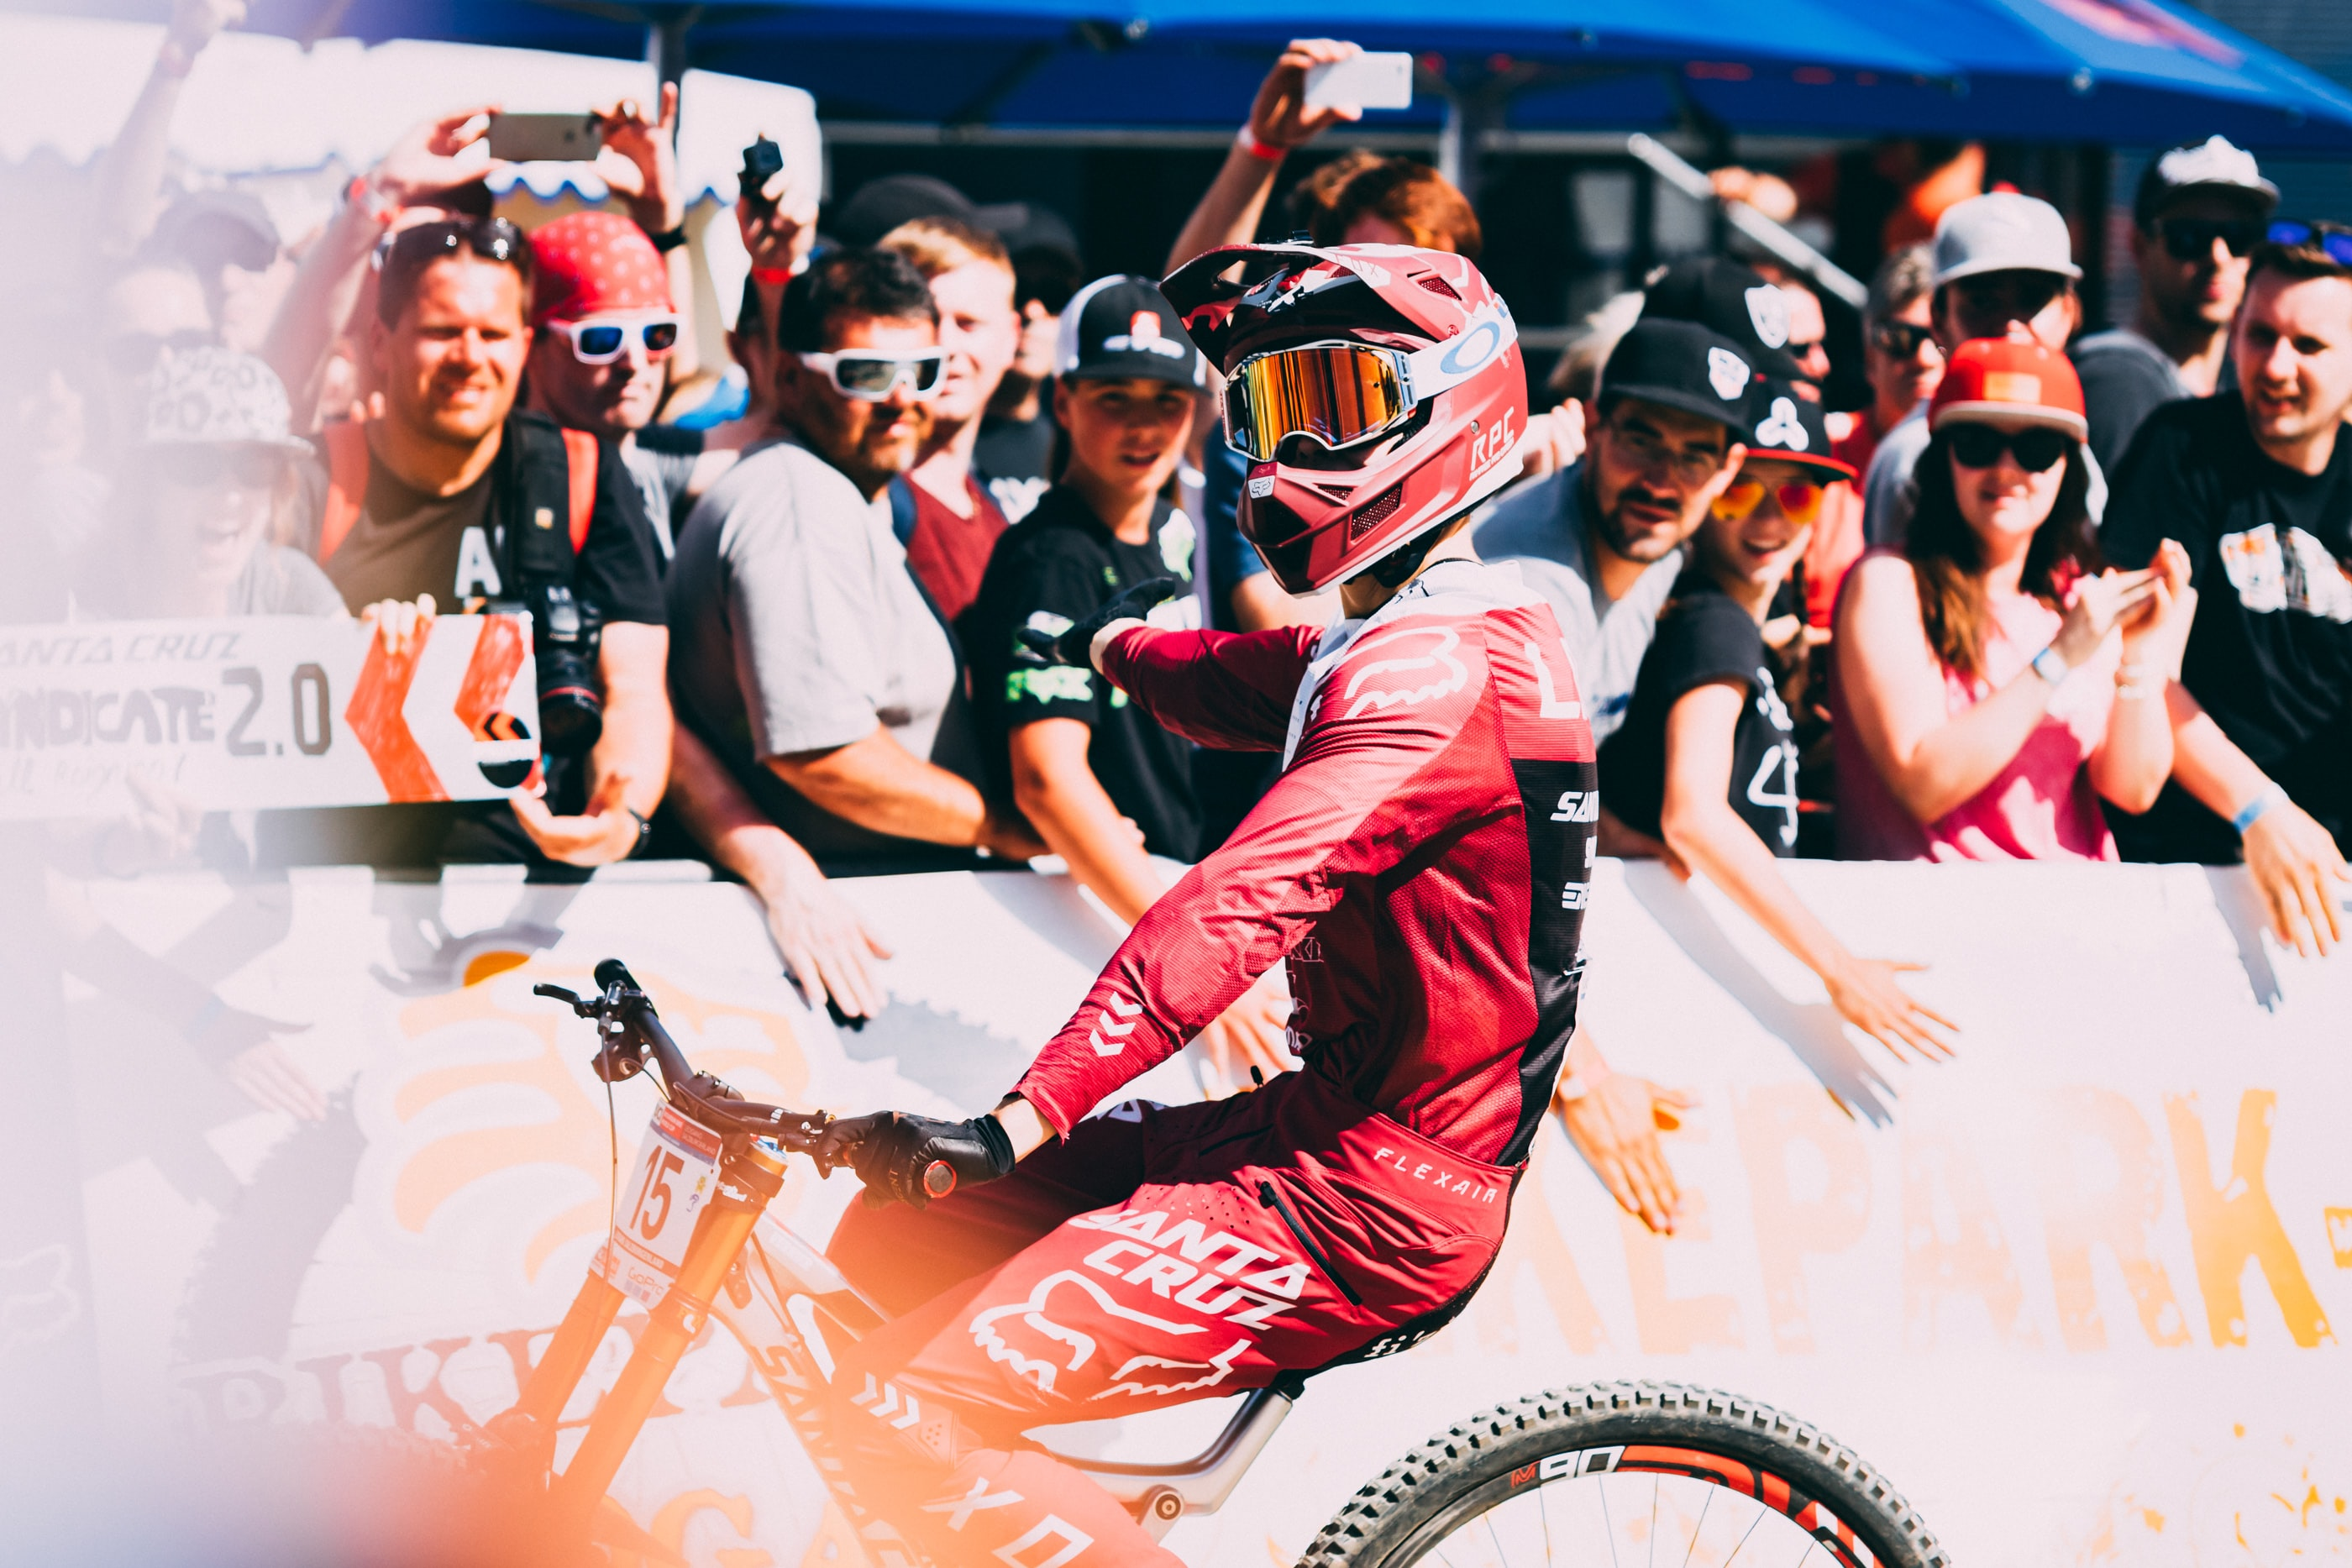 man wearing red motocross helmet during daytime